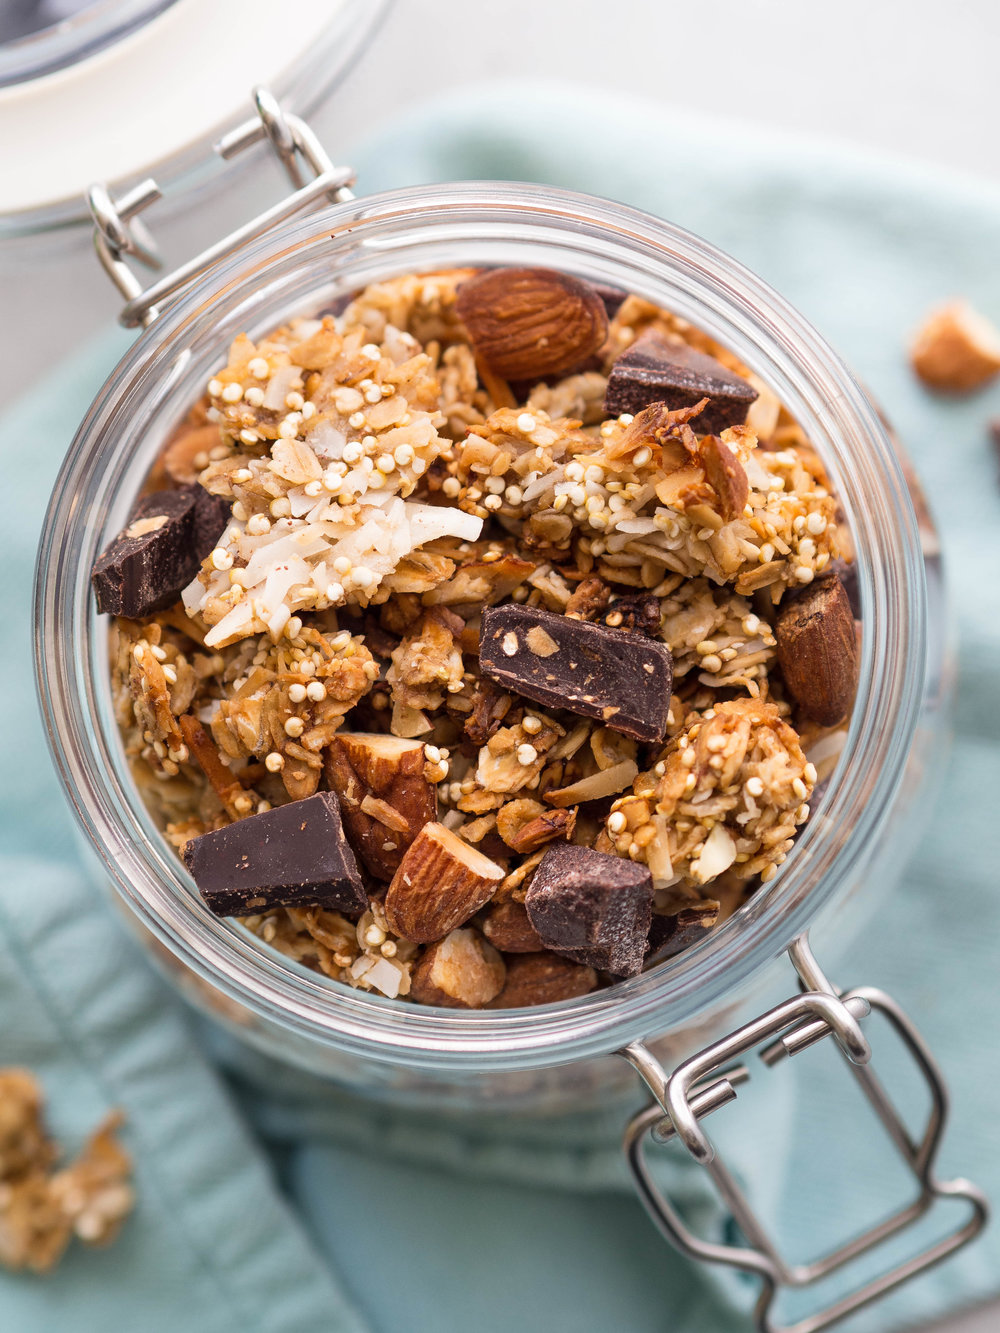 Dark Chocolate, Coconut and Almond Granola! Perfect with creamy yogurt for breakfast! Made lower in sugar by using bananas and maple syrup to sweeten. #granola #darkchocolate #snack #healthysnack #vegan